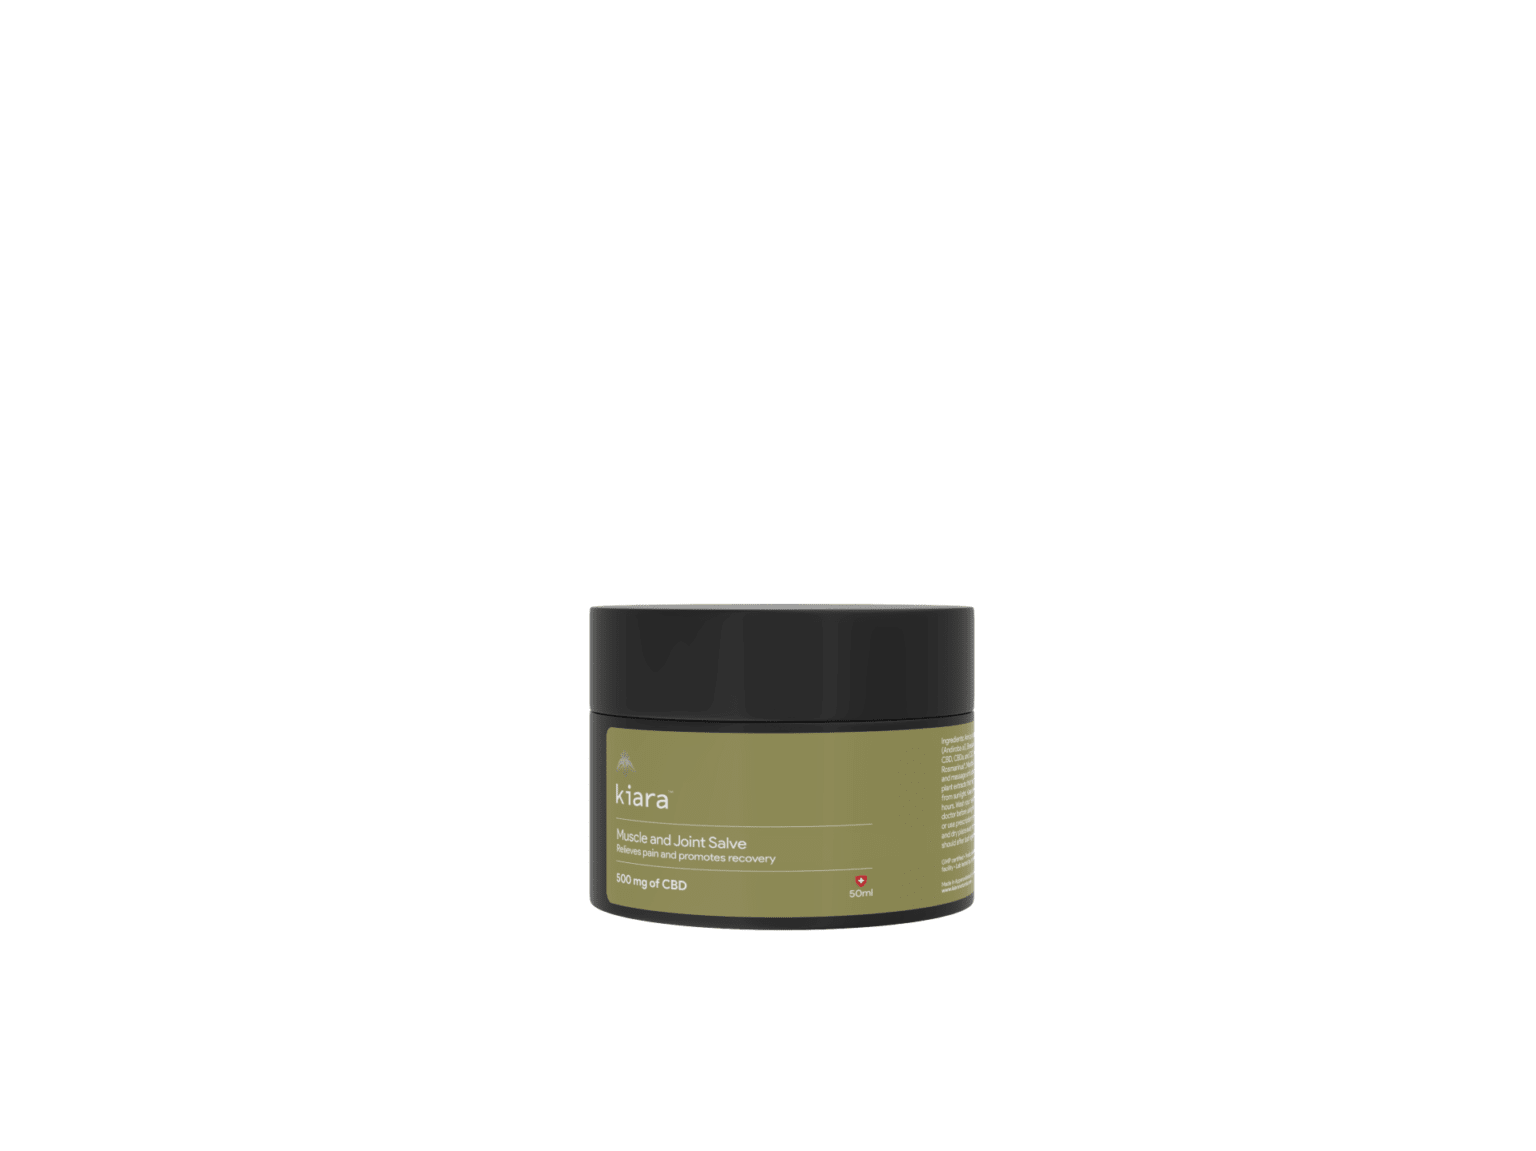 Kiara Muscle and joint salve